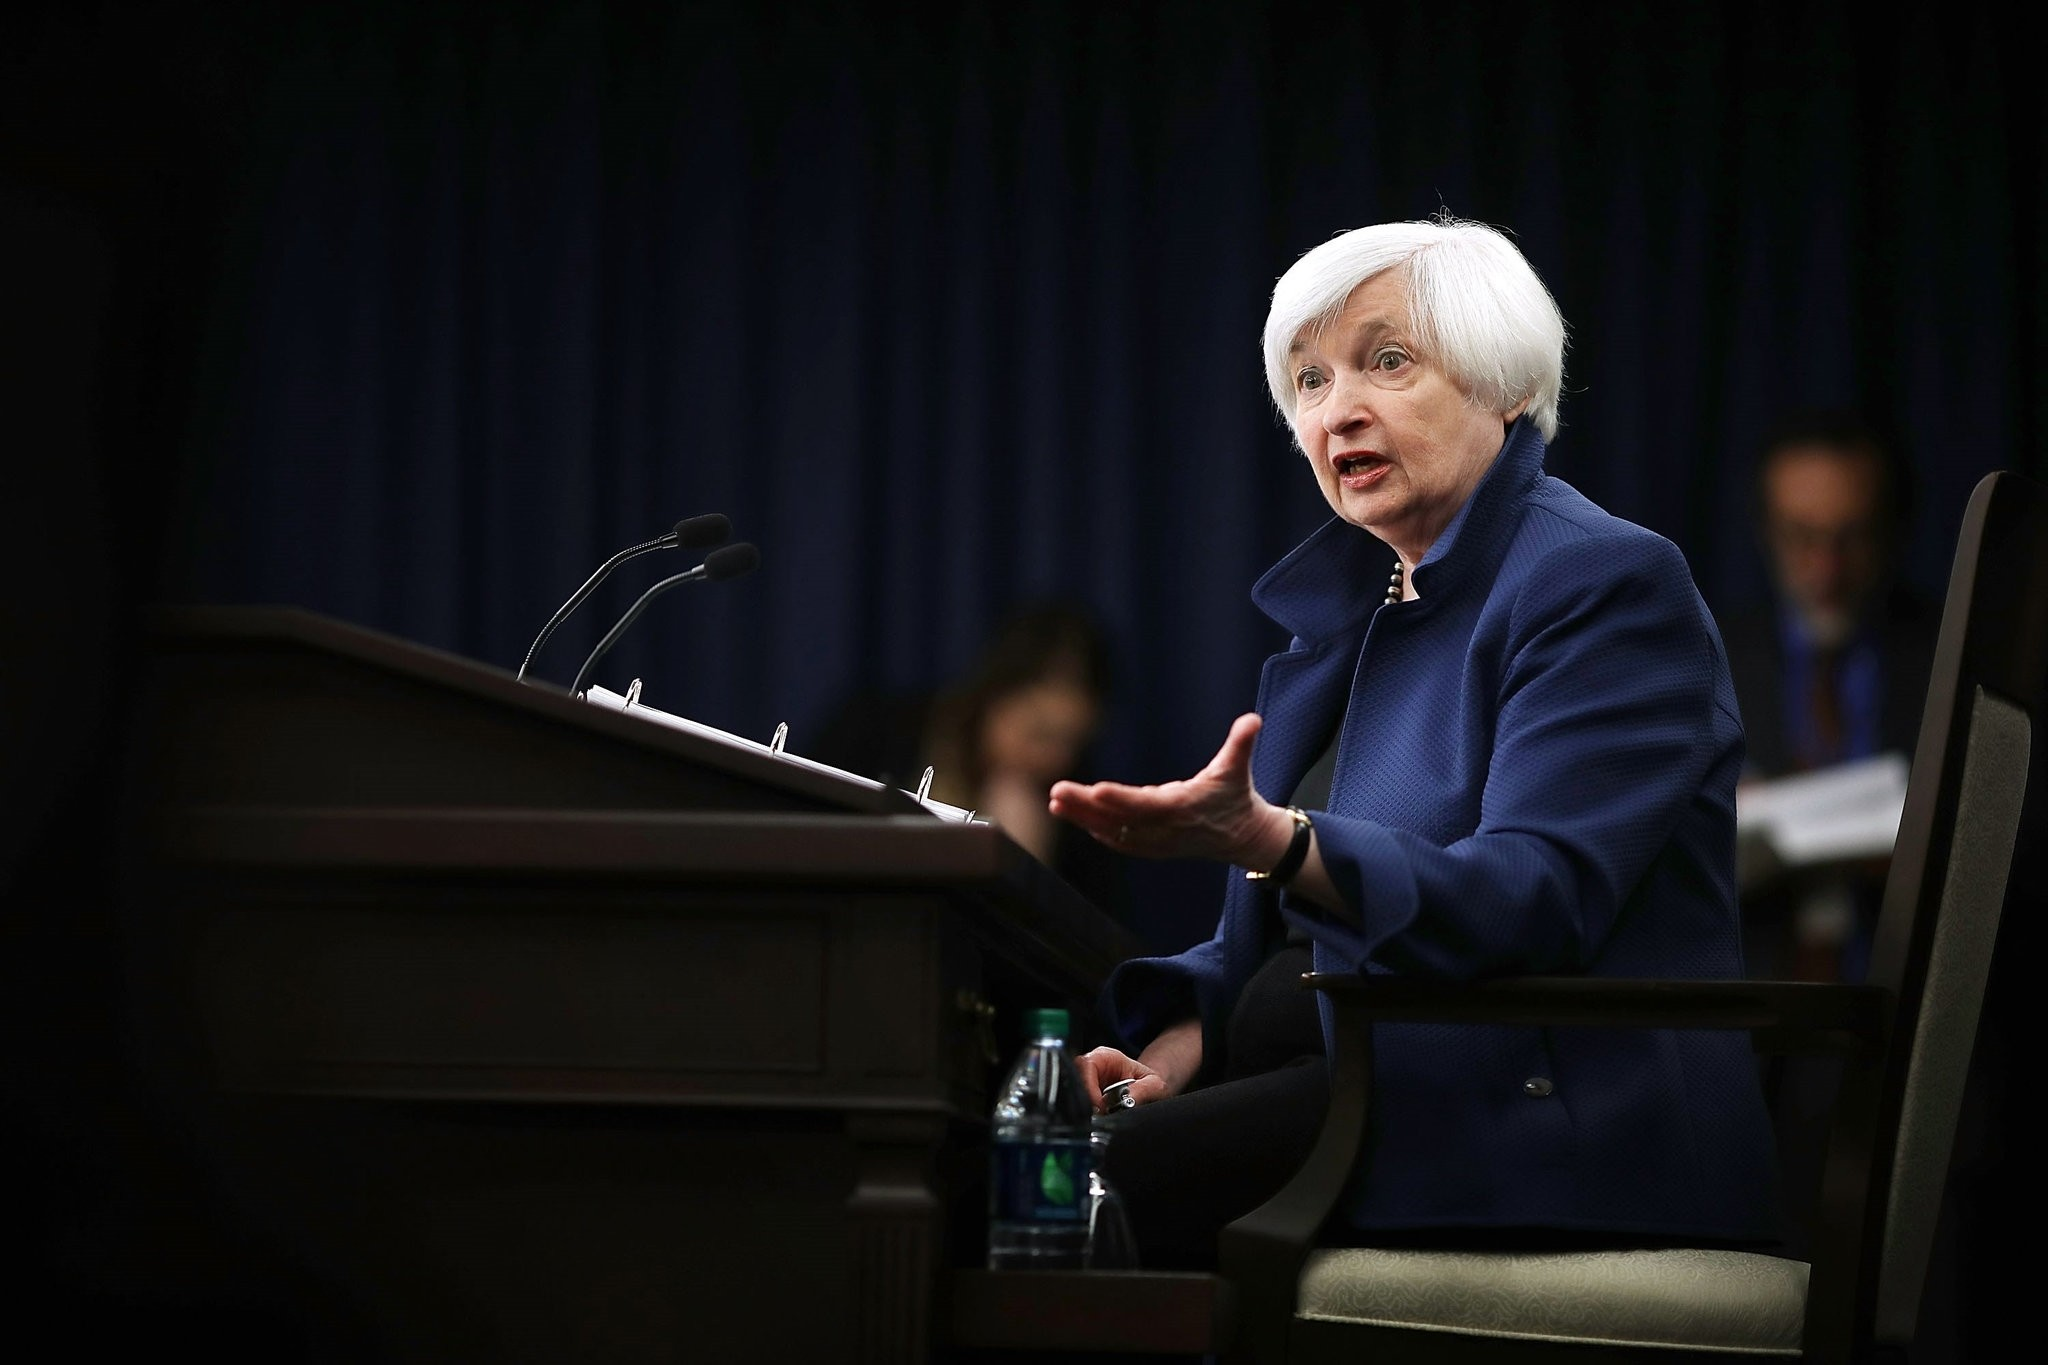 Federal Reserve Board Chairwoman Janet Yellen holds a news conference following a meeting of the Federal Open Market Committee March 15, 2017 in Washington, DC. (AFP Photo)